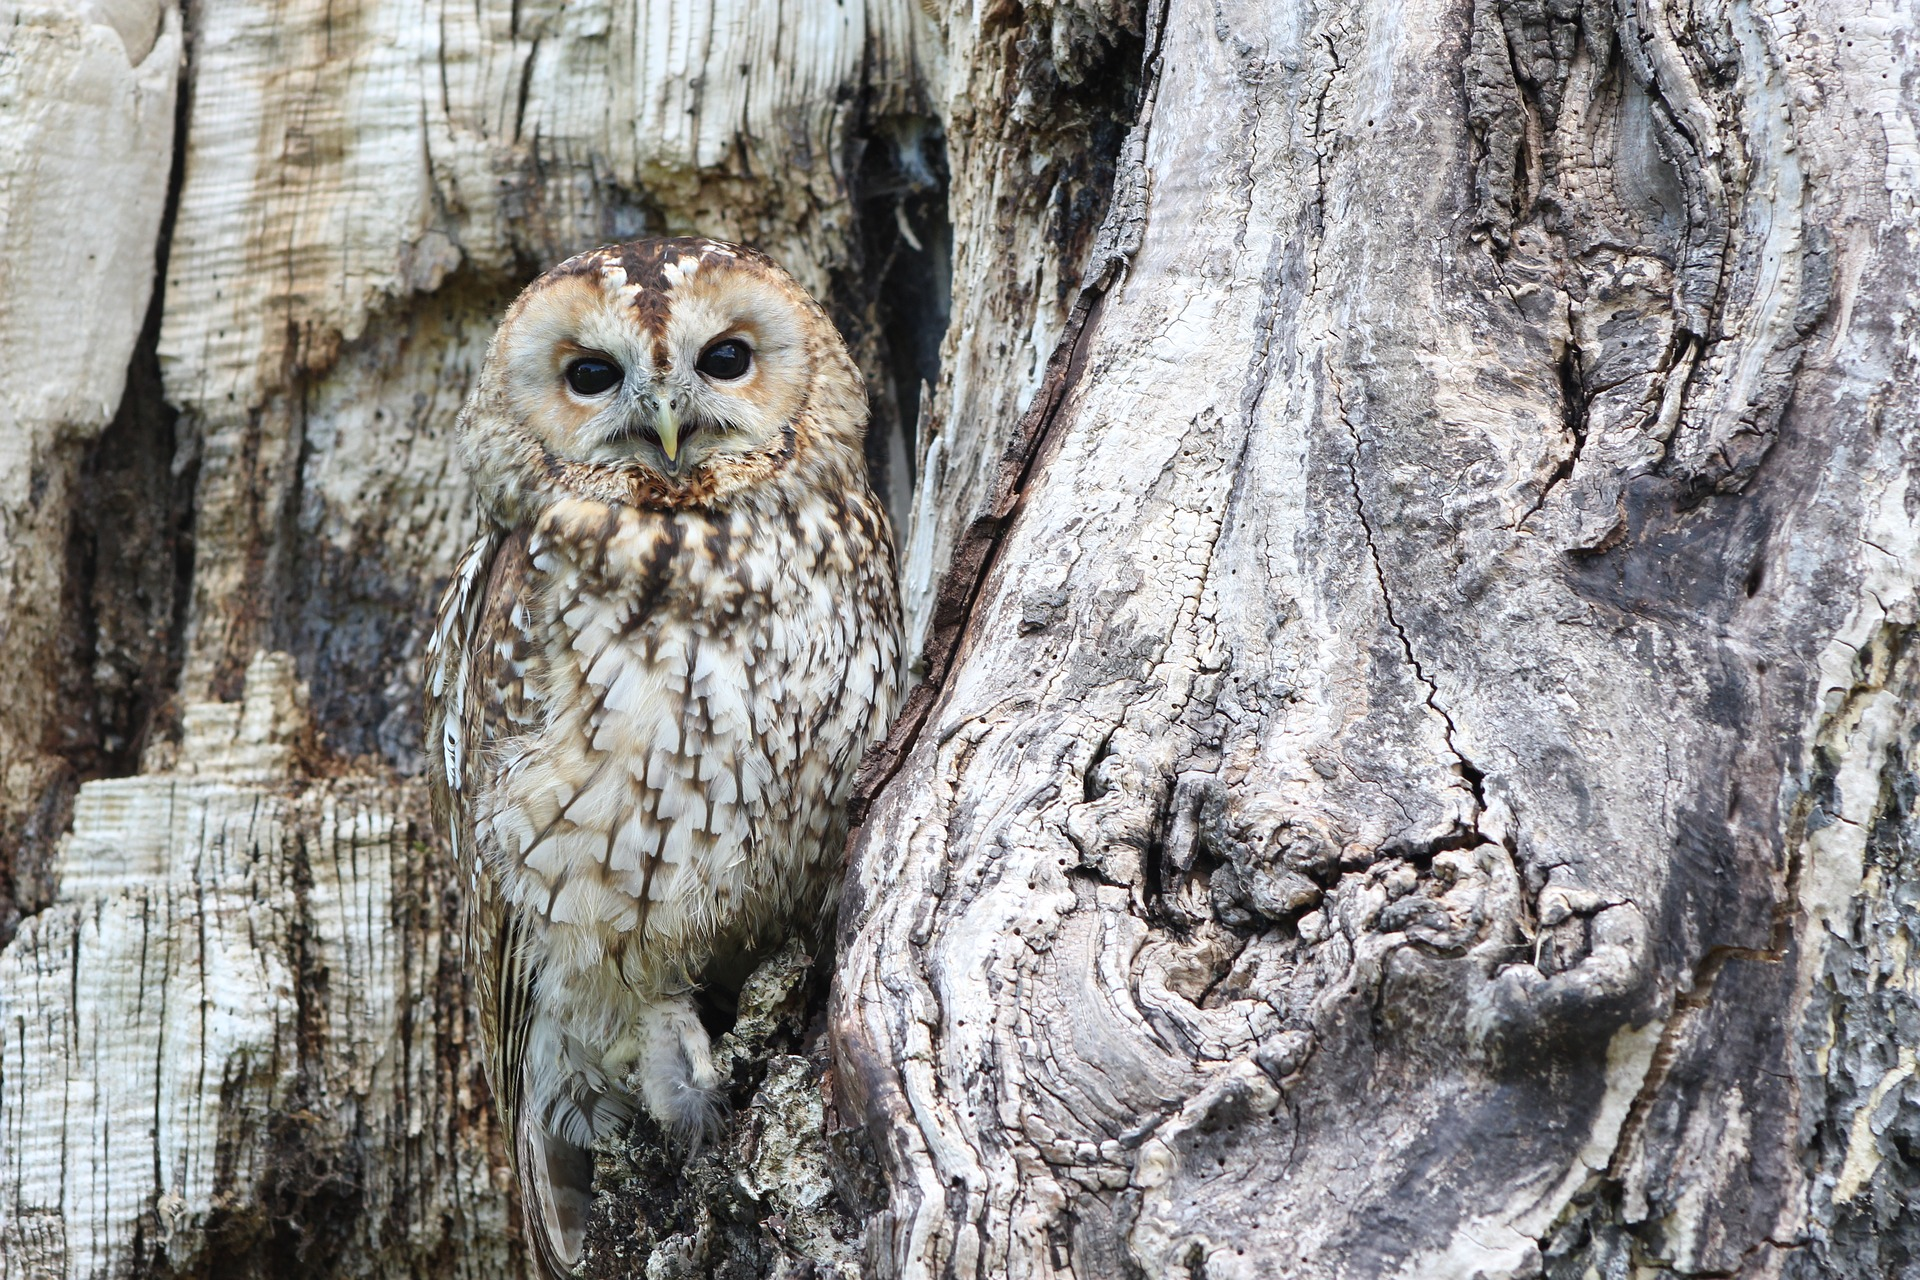 North Line OWL (owl in tree pictured)